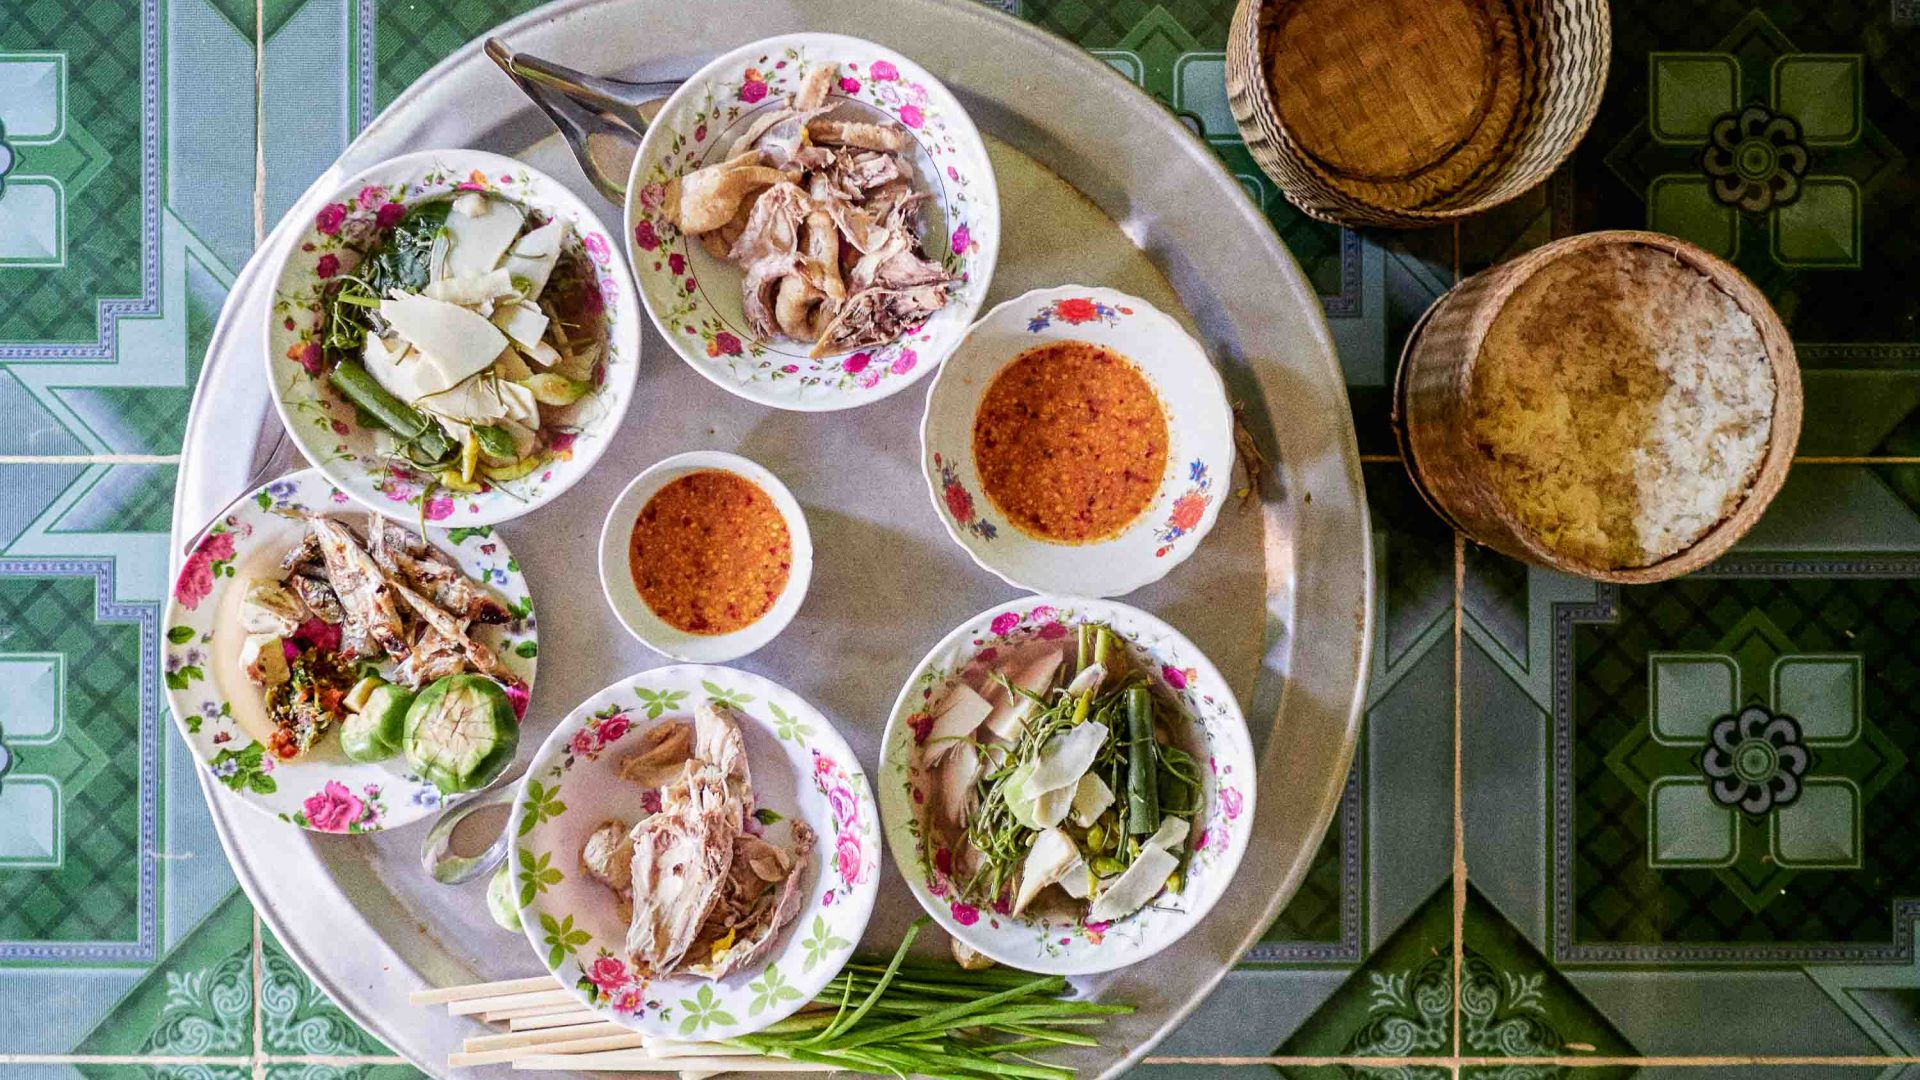 A traditional meal is served up in Laos.